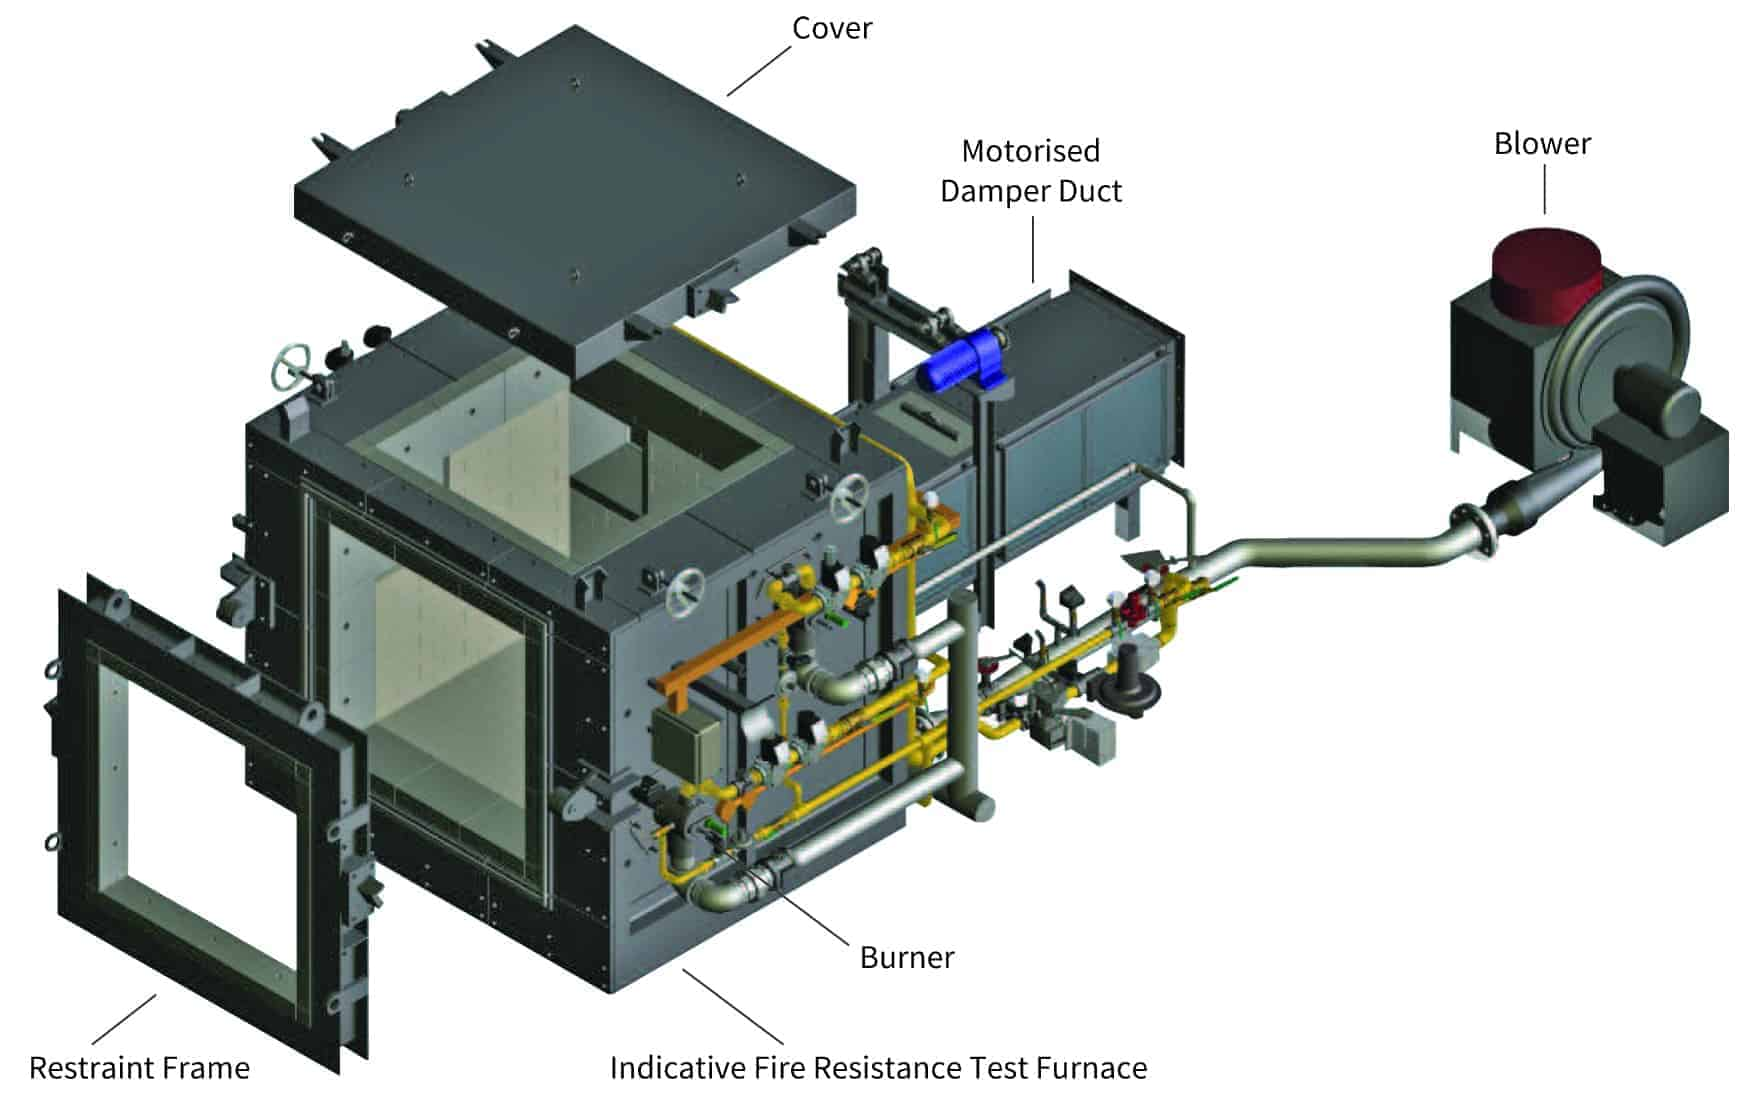 indicative fire resistance test furnace